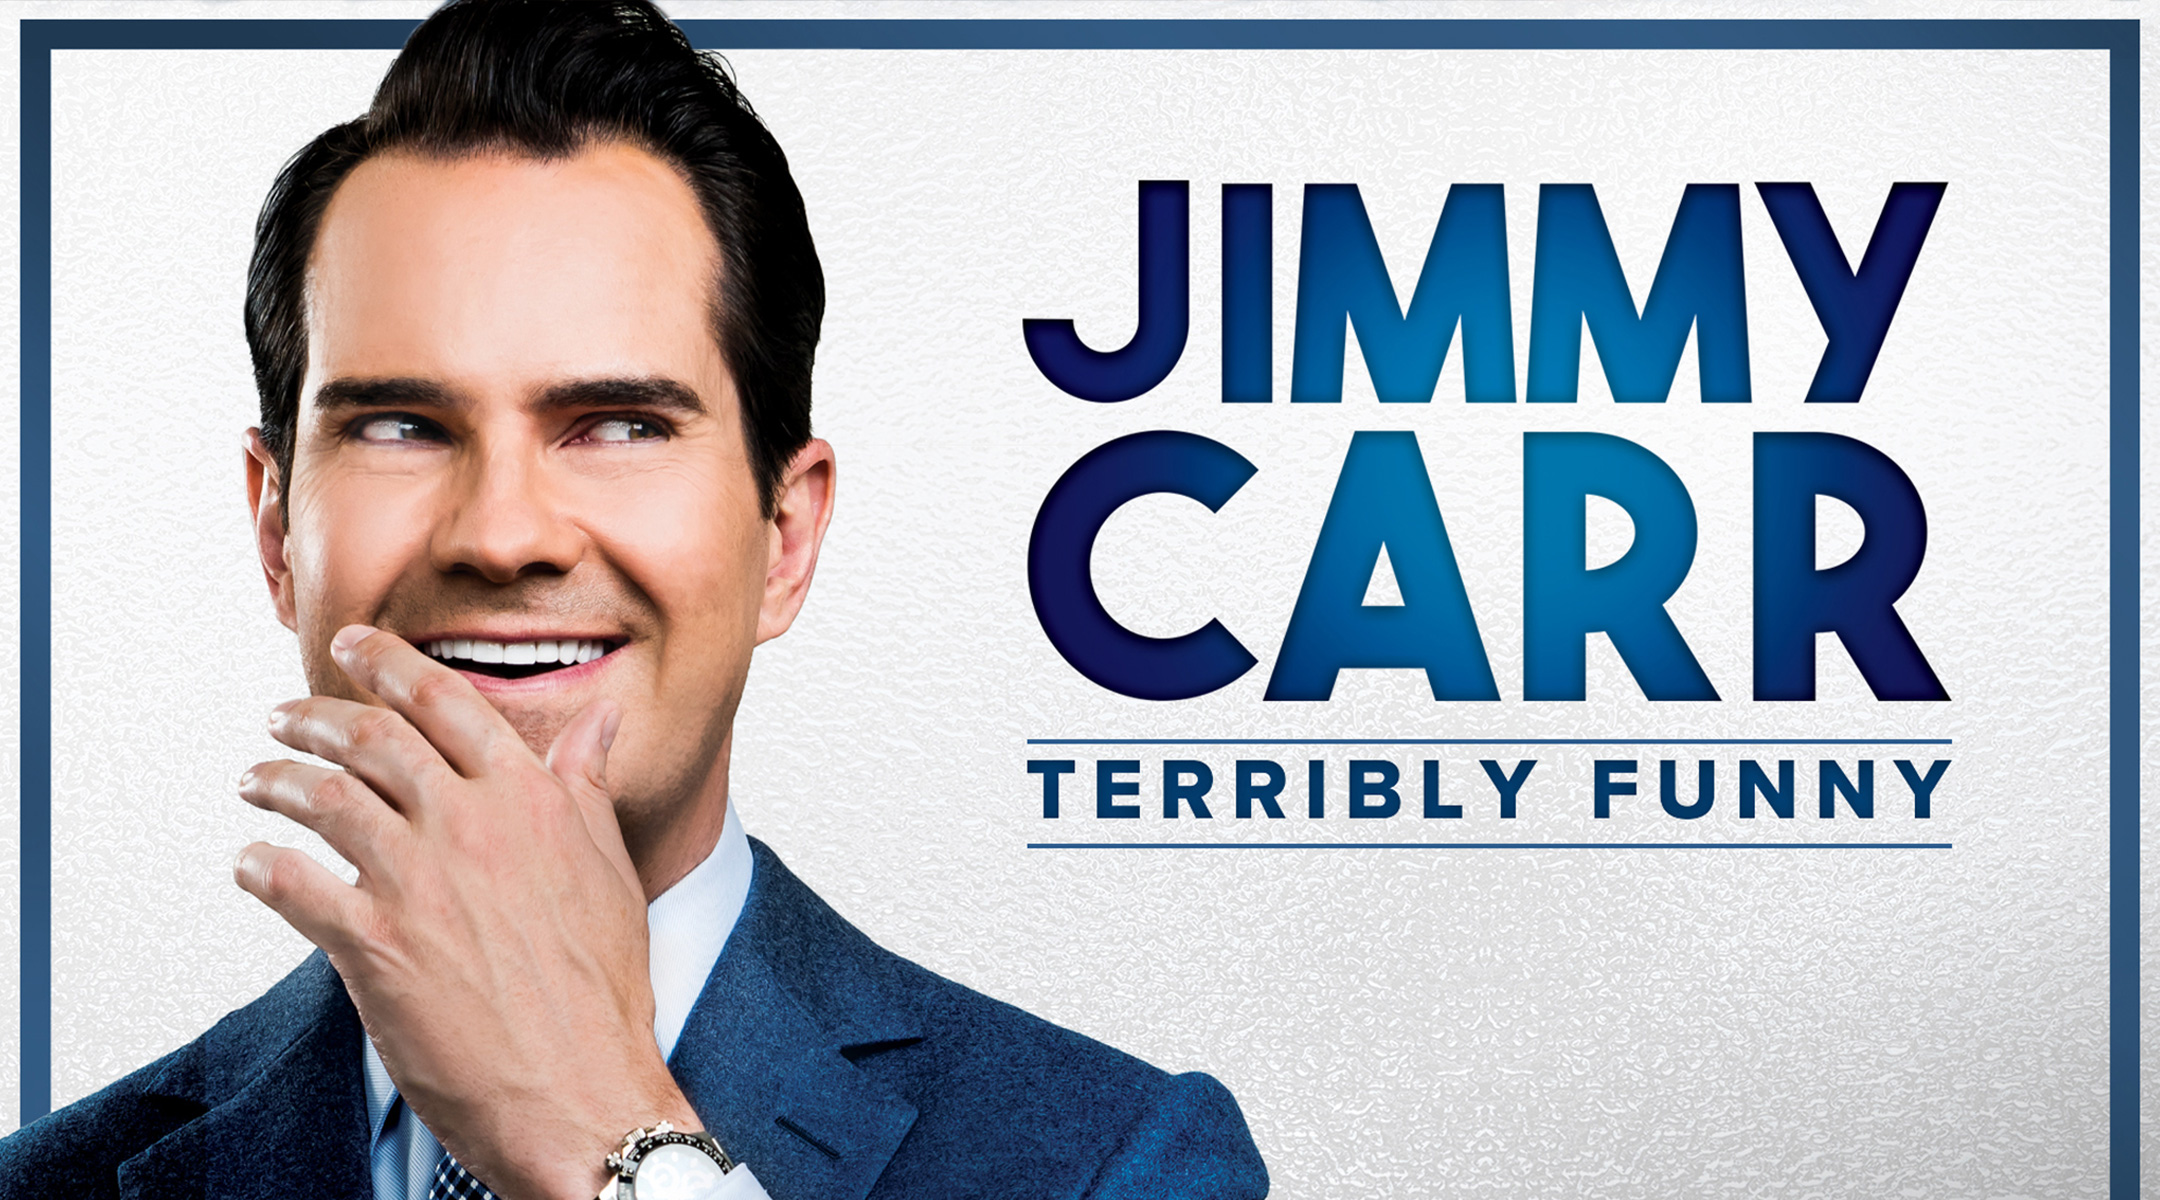 Jimmy Carr: Terribly Funny - Warwick 21st